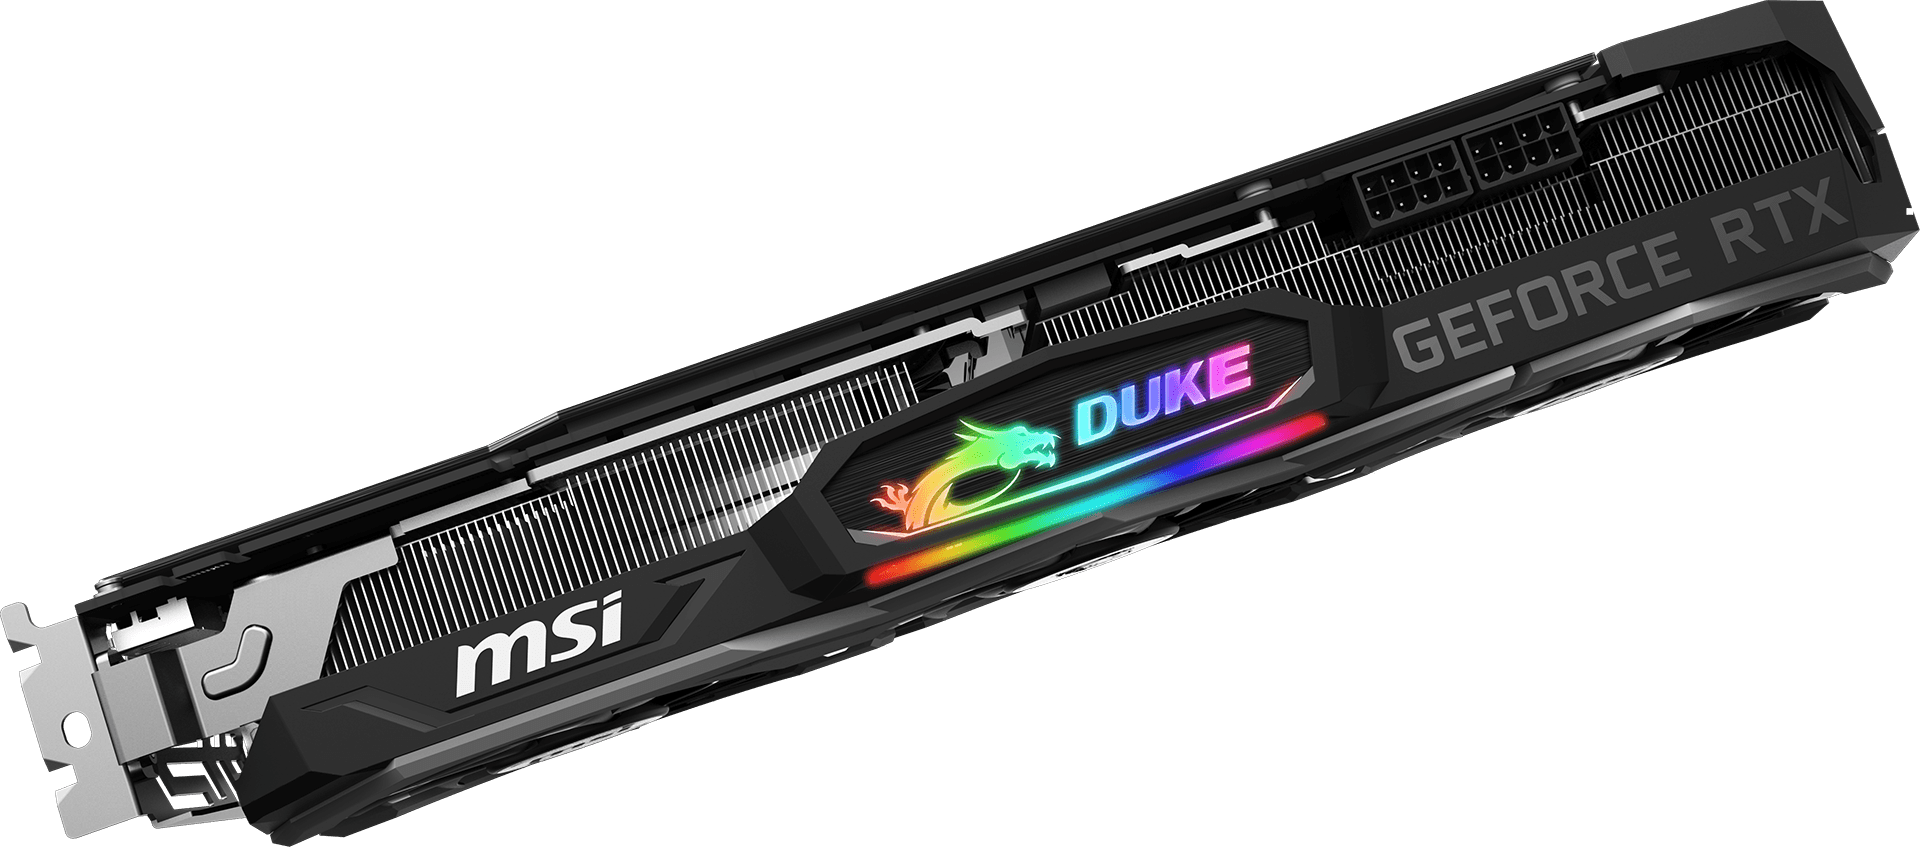 geforce rtx duke